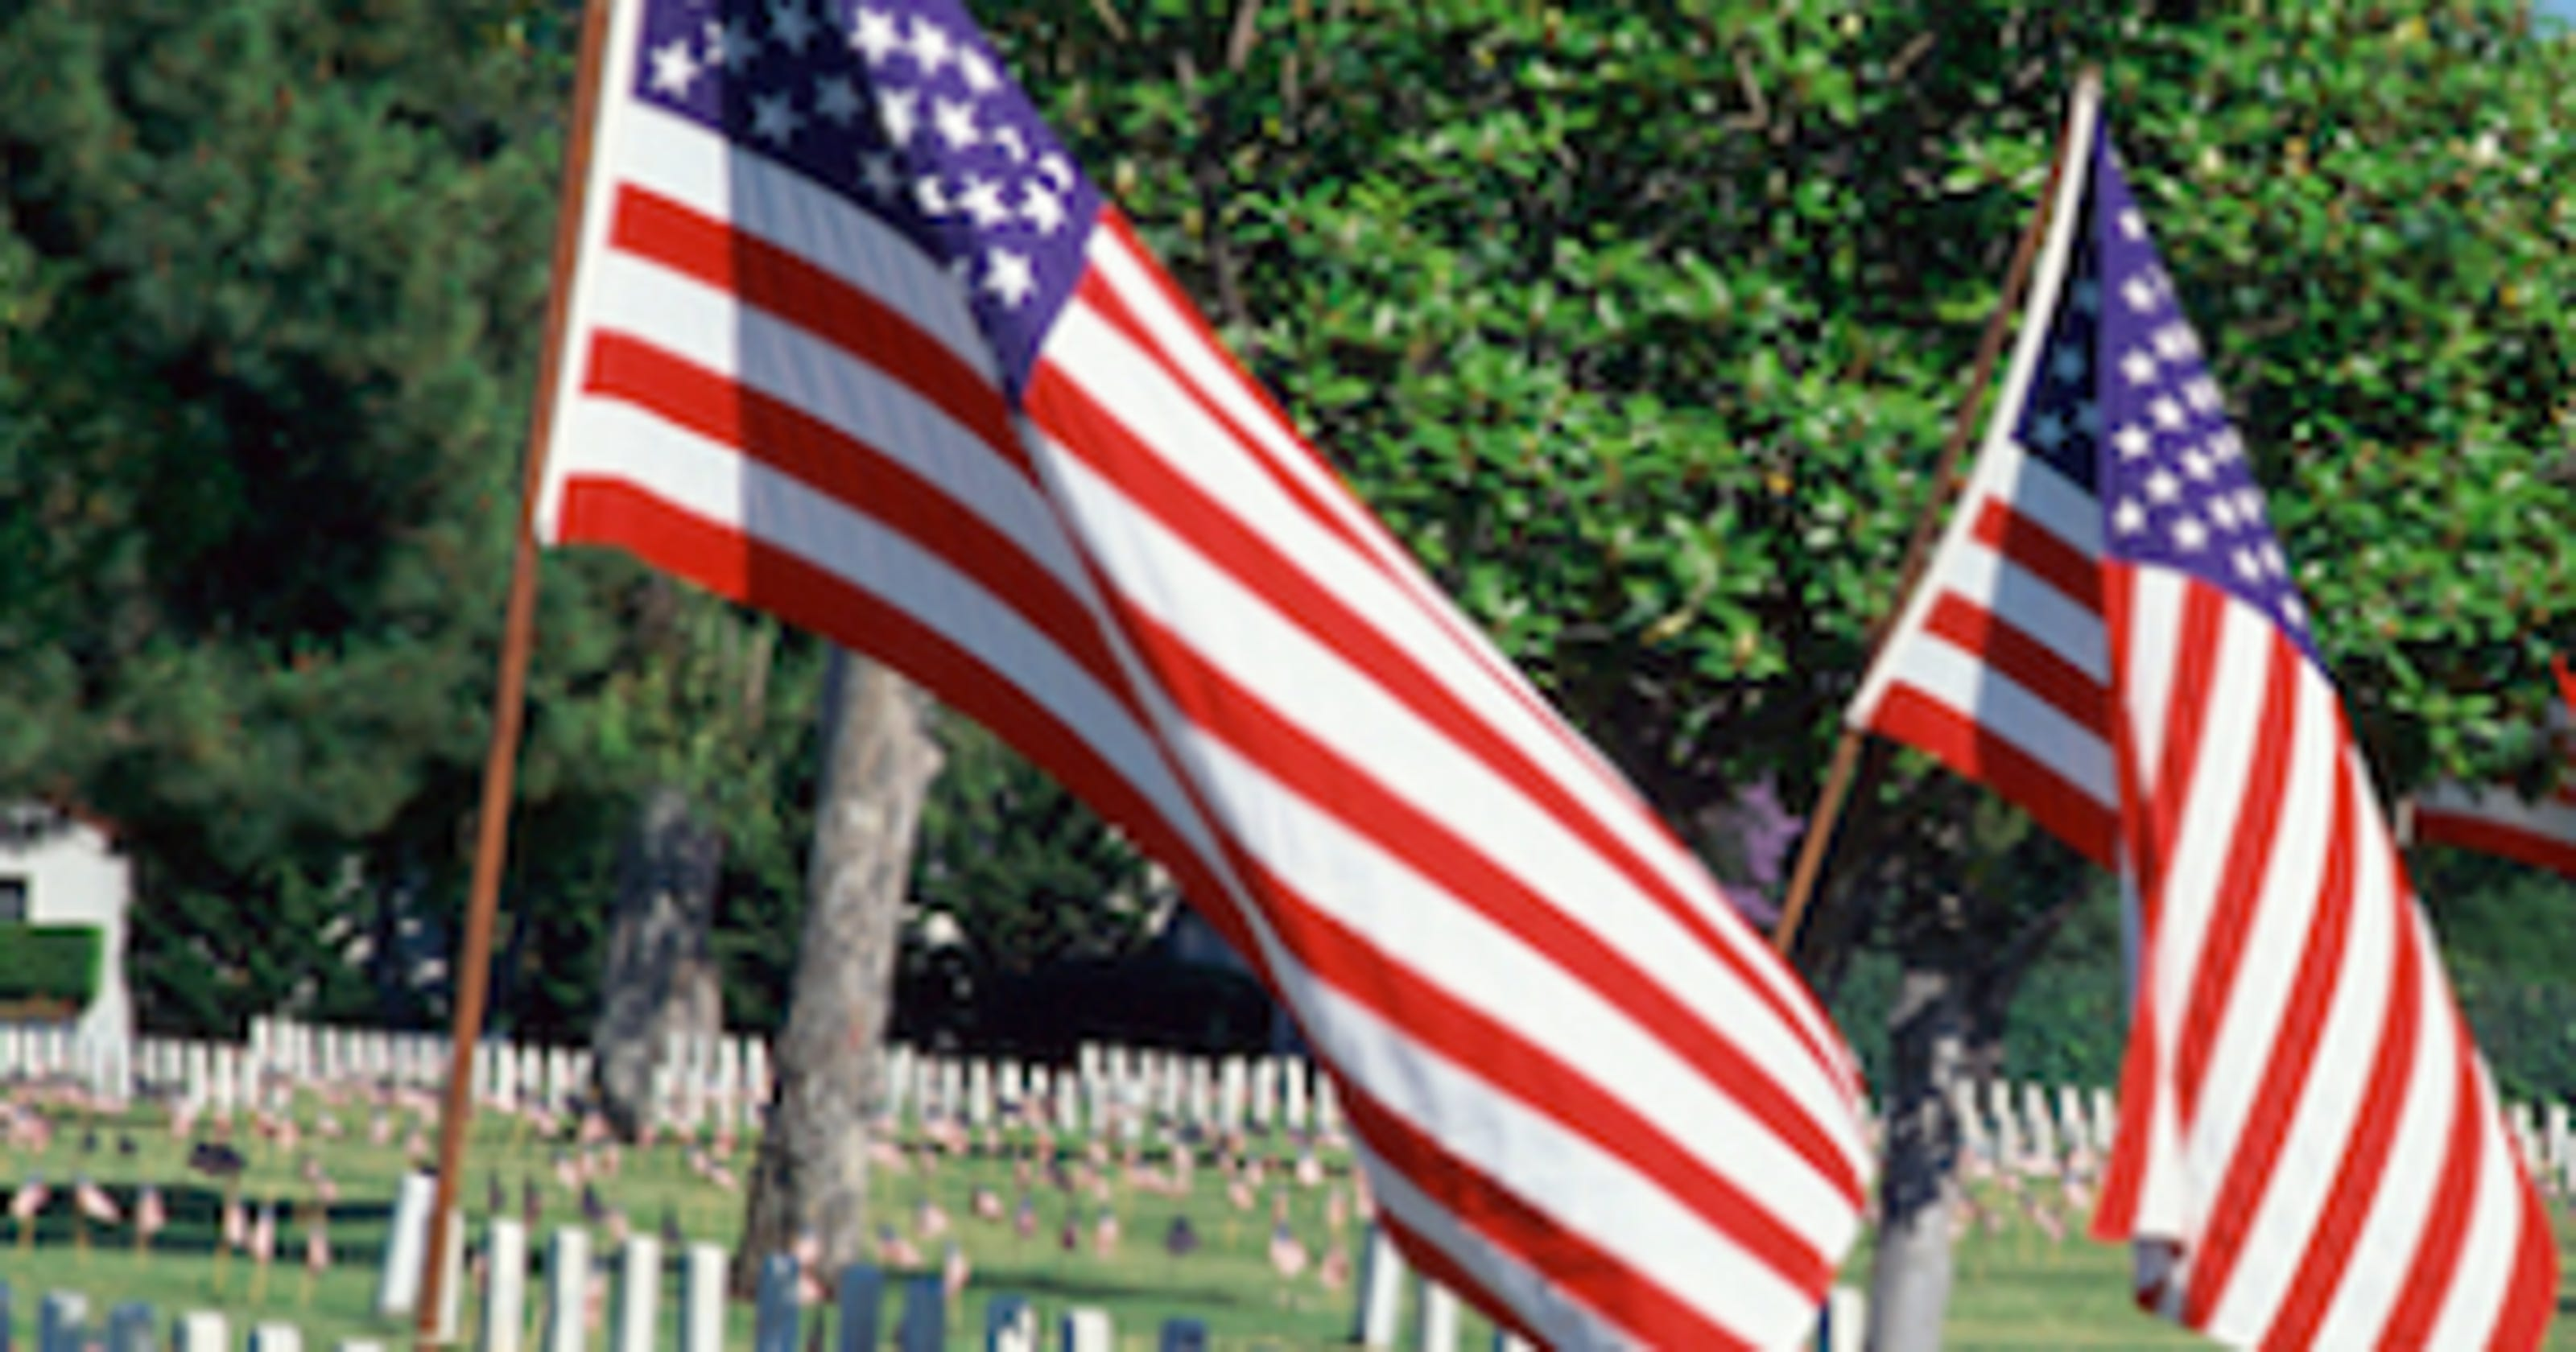 Memorial Day 2019: What is closed for Memorial Day? What is